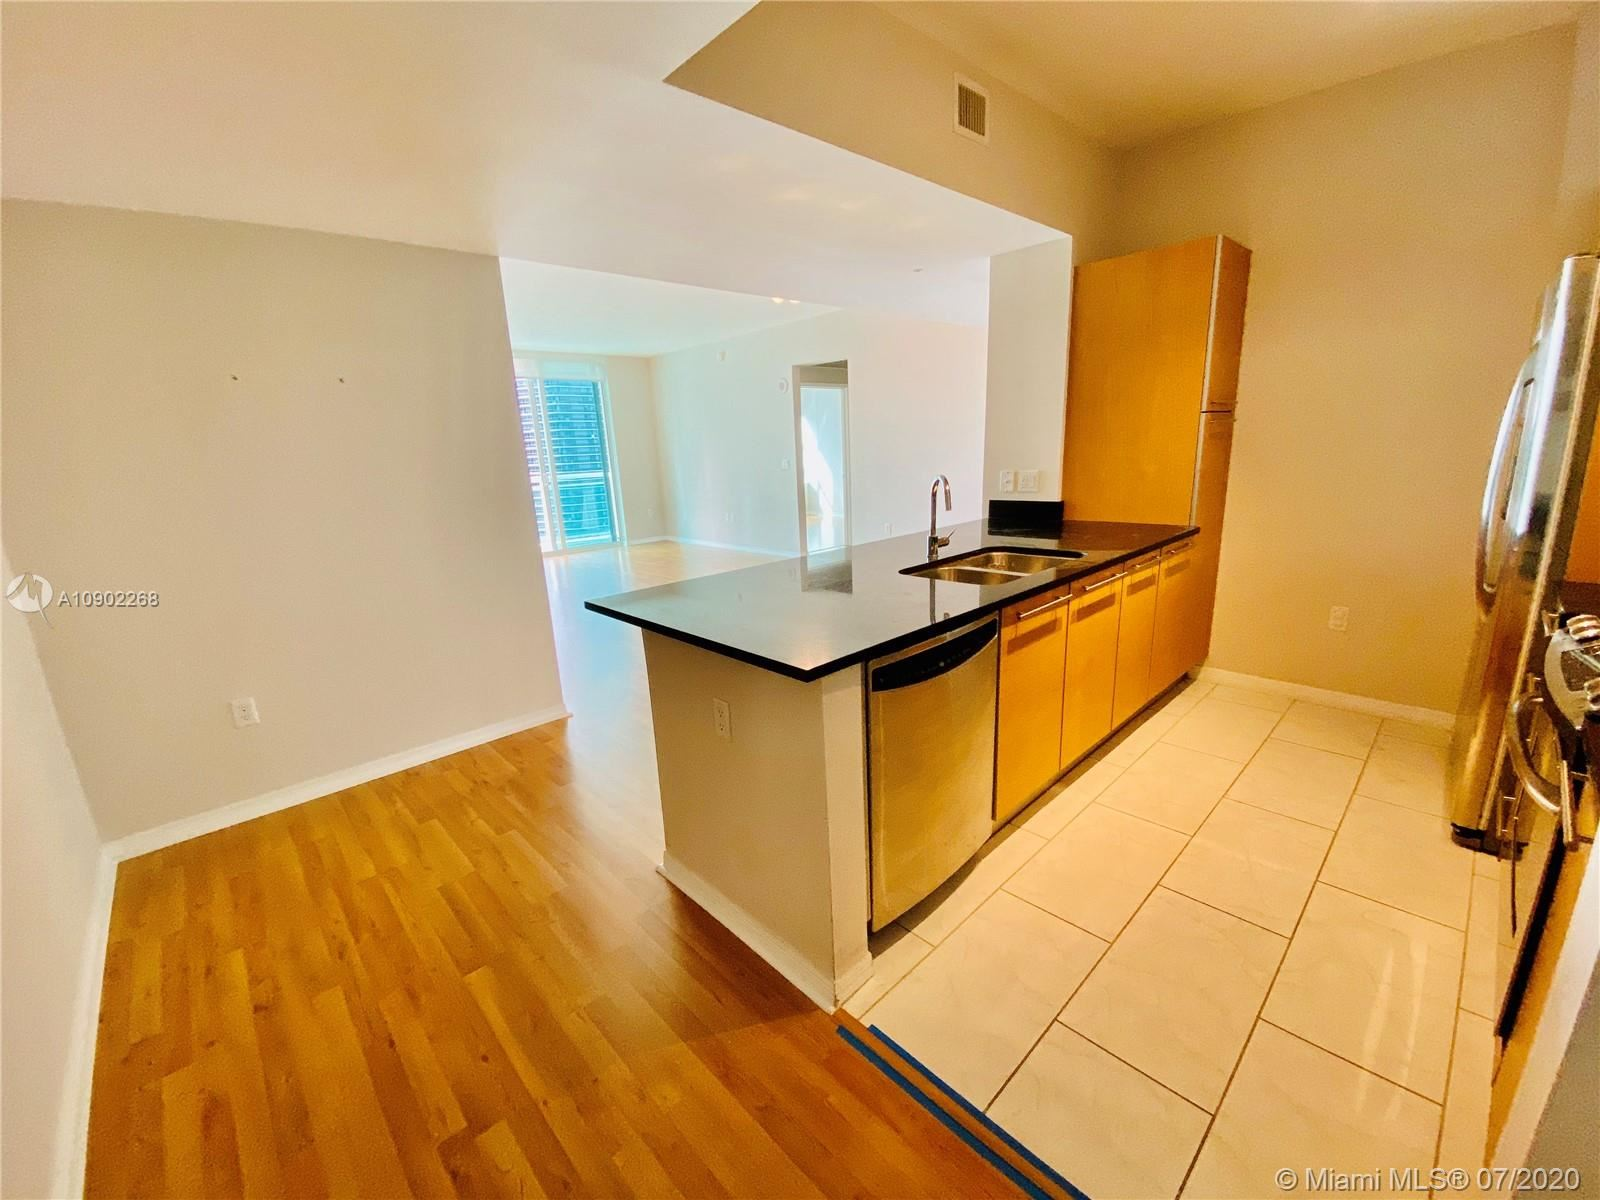 951 Brickell Ave #3005, Miami, FL 33131 - #: A10902268